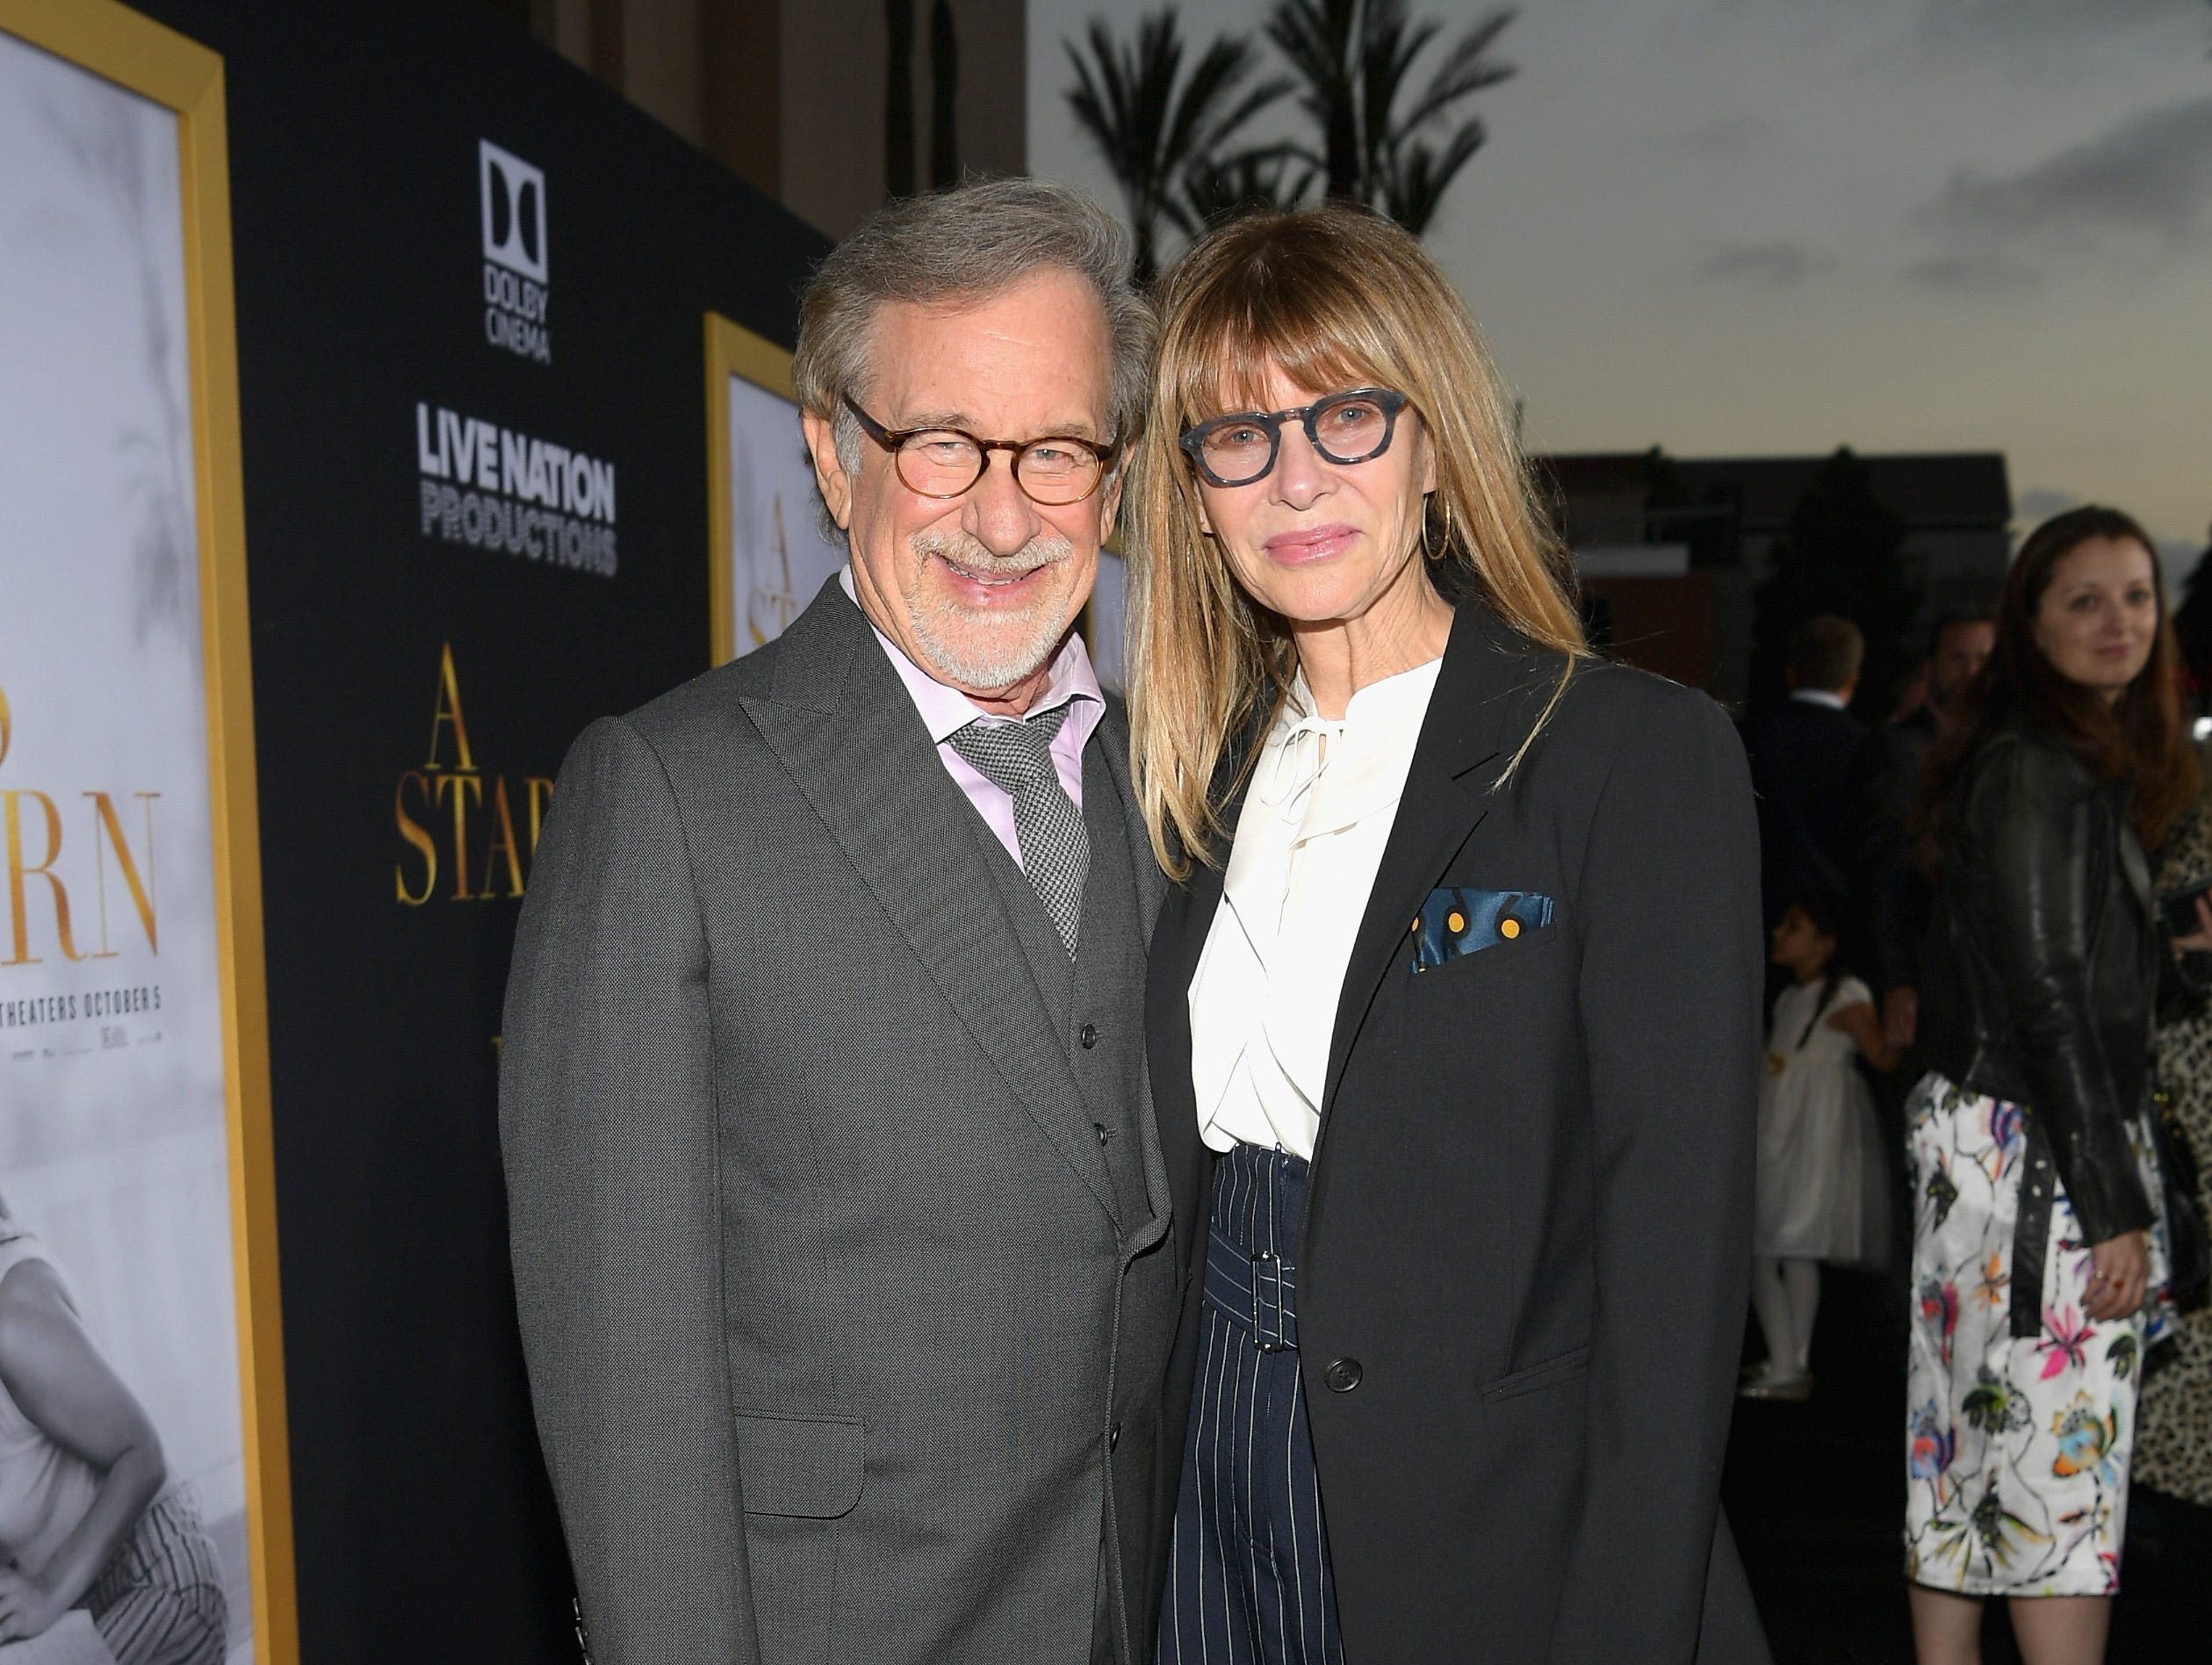 "LOS ANGELES, CA - SEPTEMBER 24:  (L-R) Steven Spielberg and Kate Capshaw arrive on the red carpet at the Premiere Of Warner Bros. Pictures' ""A Star Is Born"" at The Shrine Auditorium on September 24, 2018 in Los Angeles, California.  (Photo by Emma McIntyre/Getty Images) ORG XMIT: 775229471 ORIG FILE ID: 1039666192"